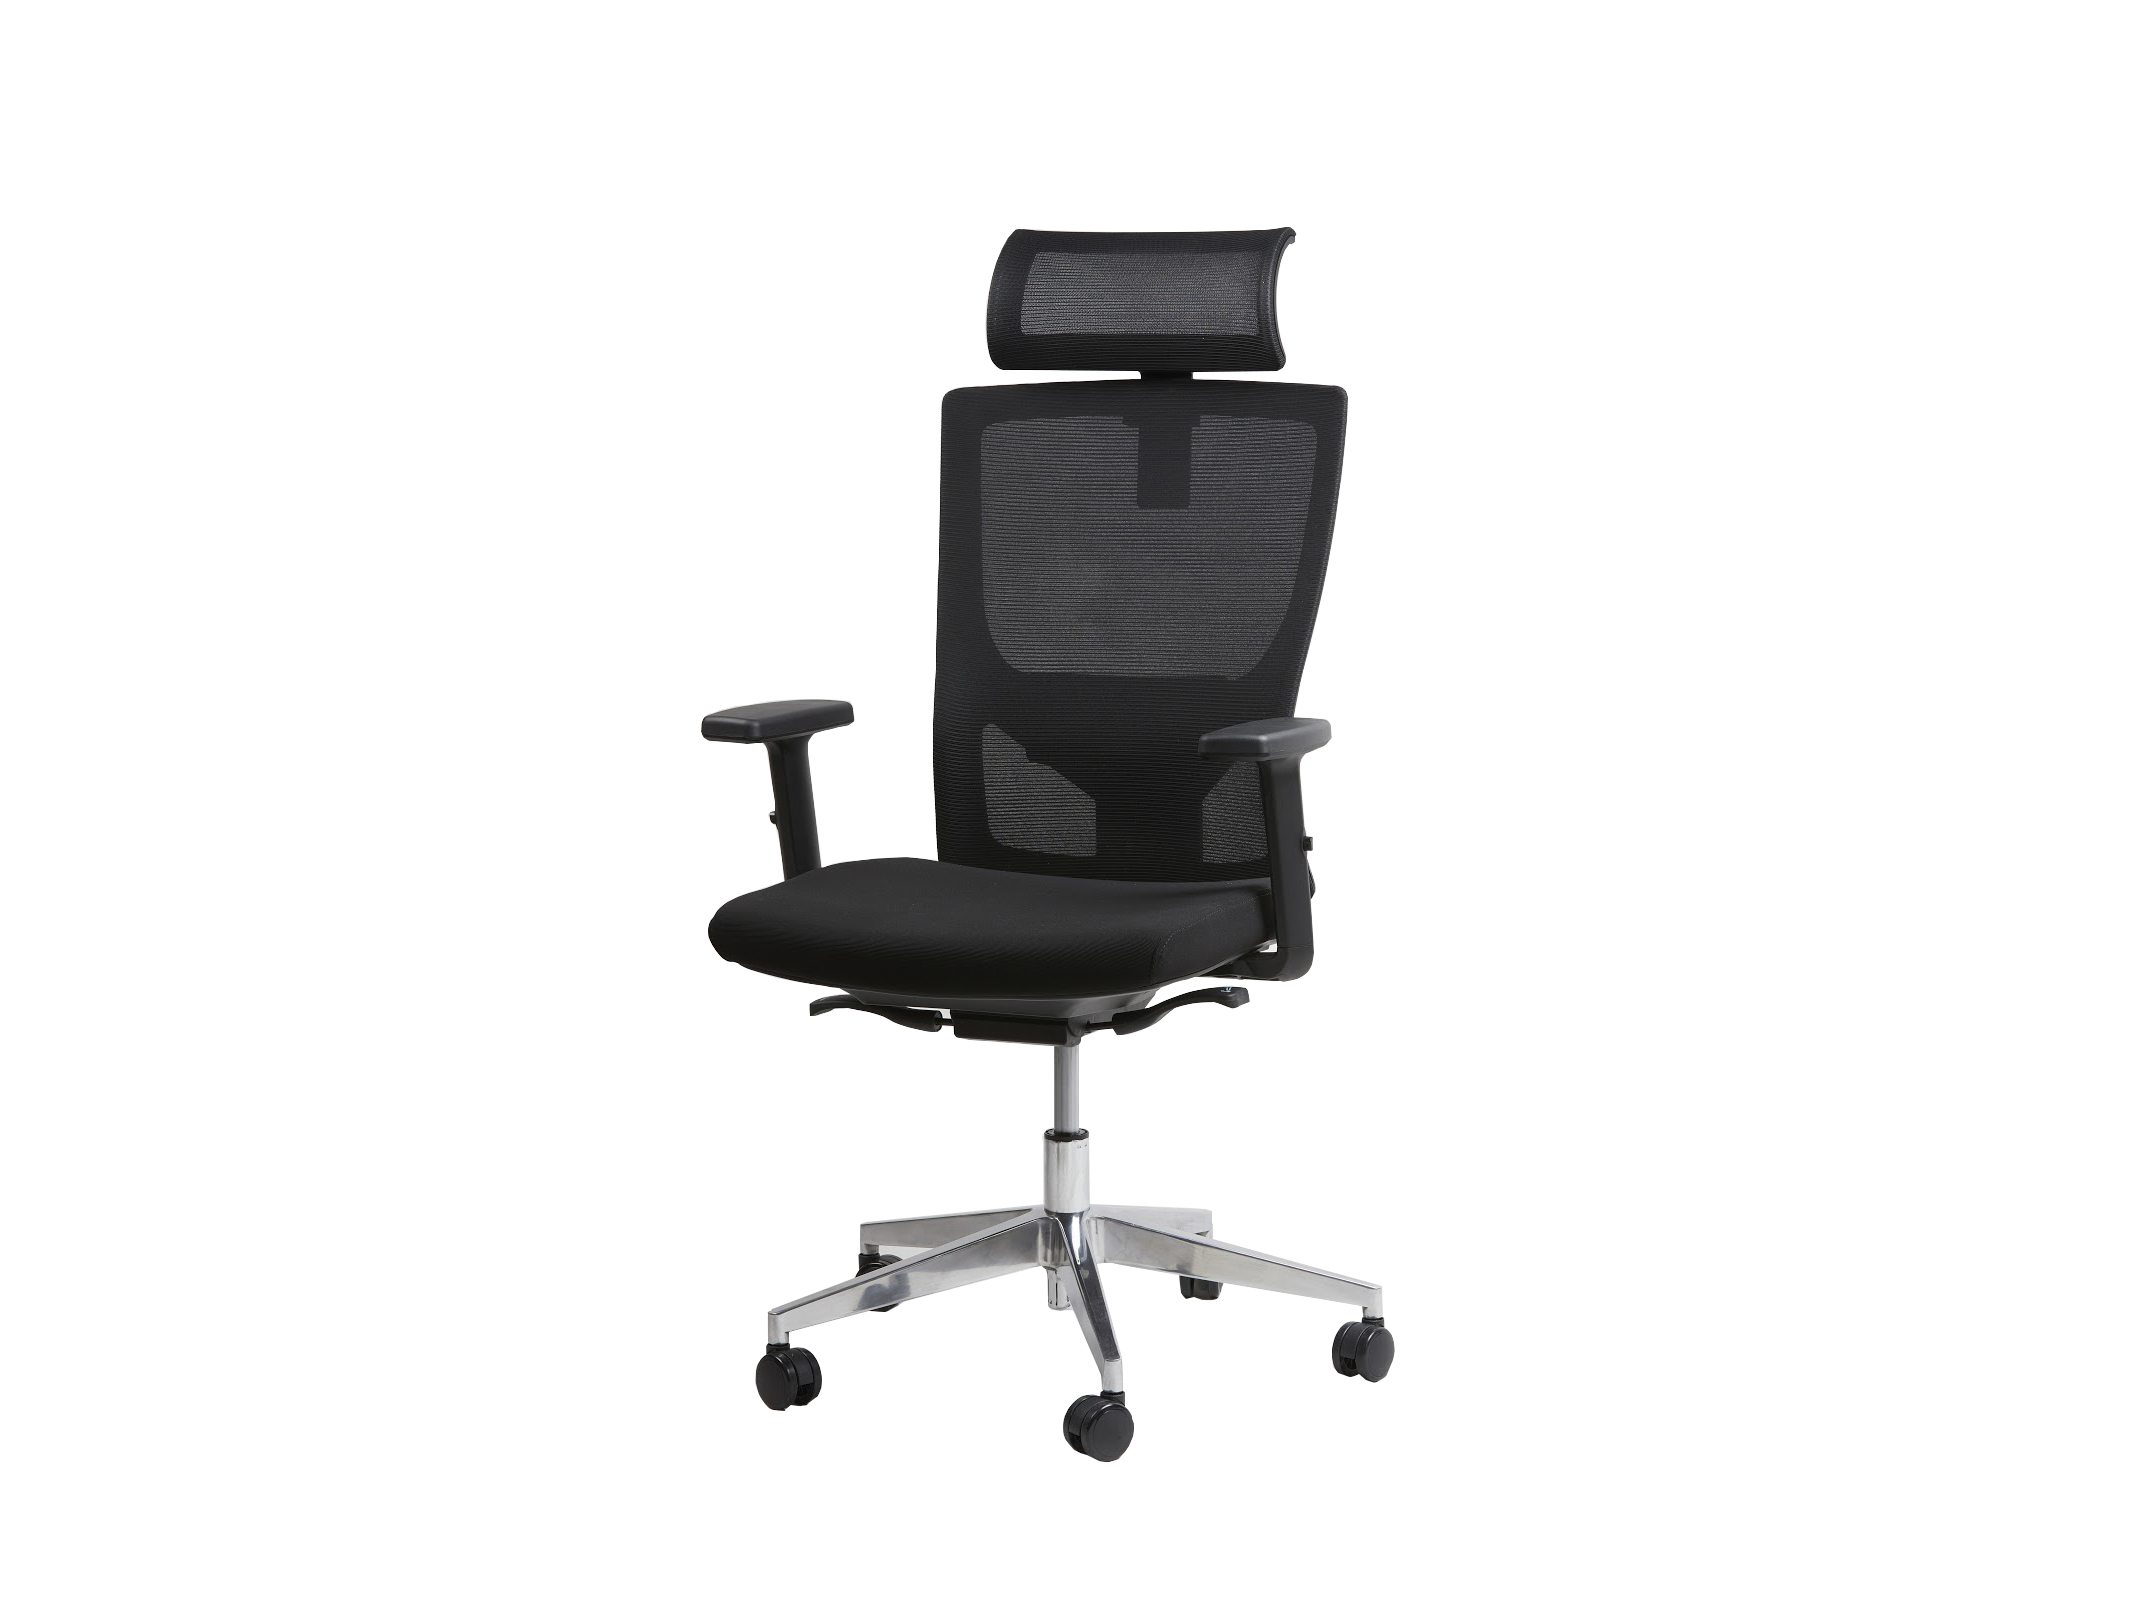 The Home Office Pod Executive Chair